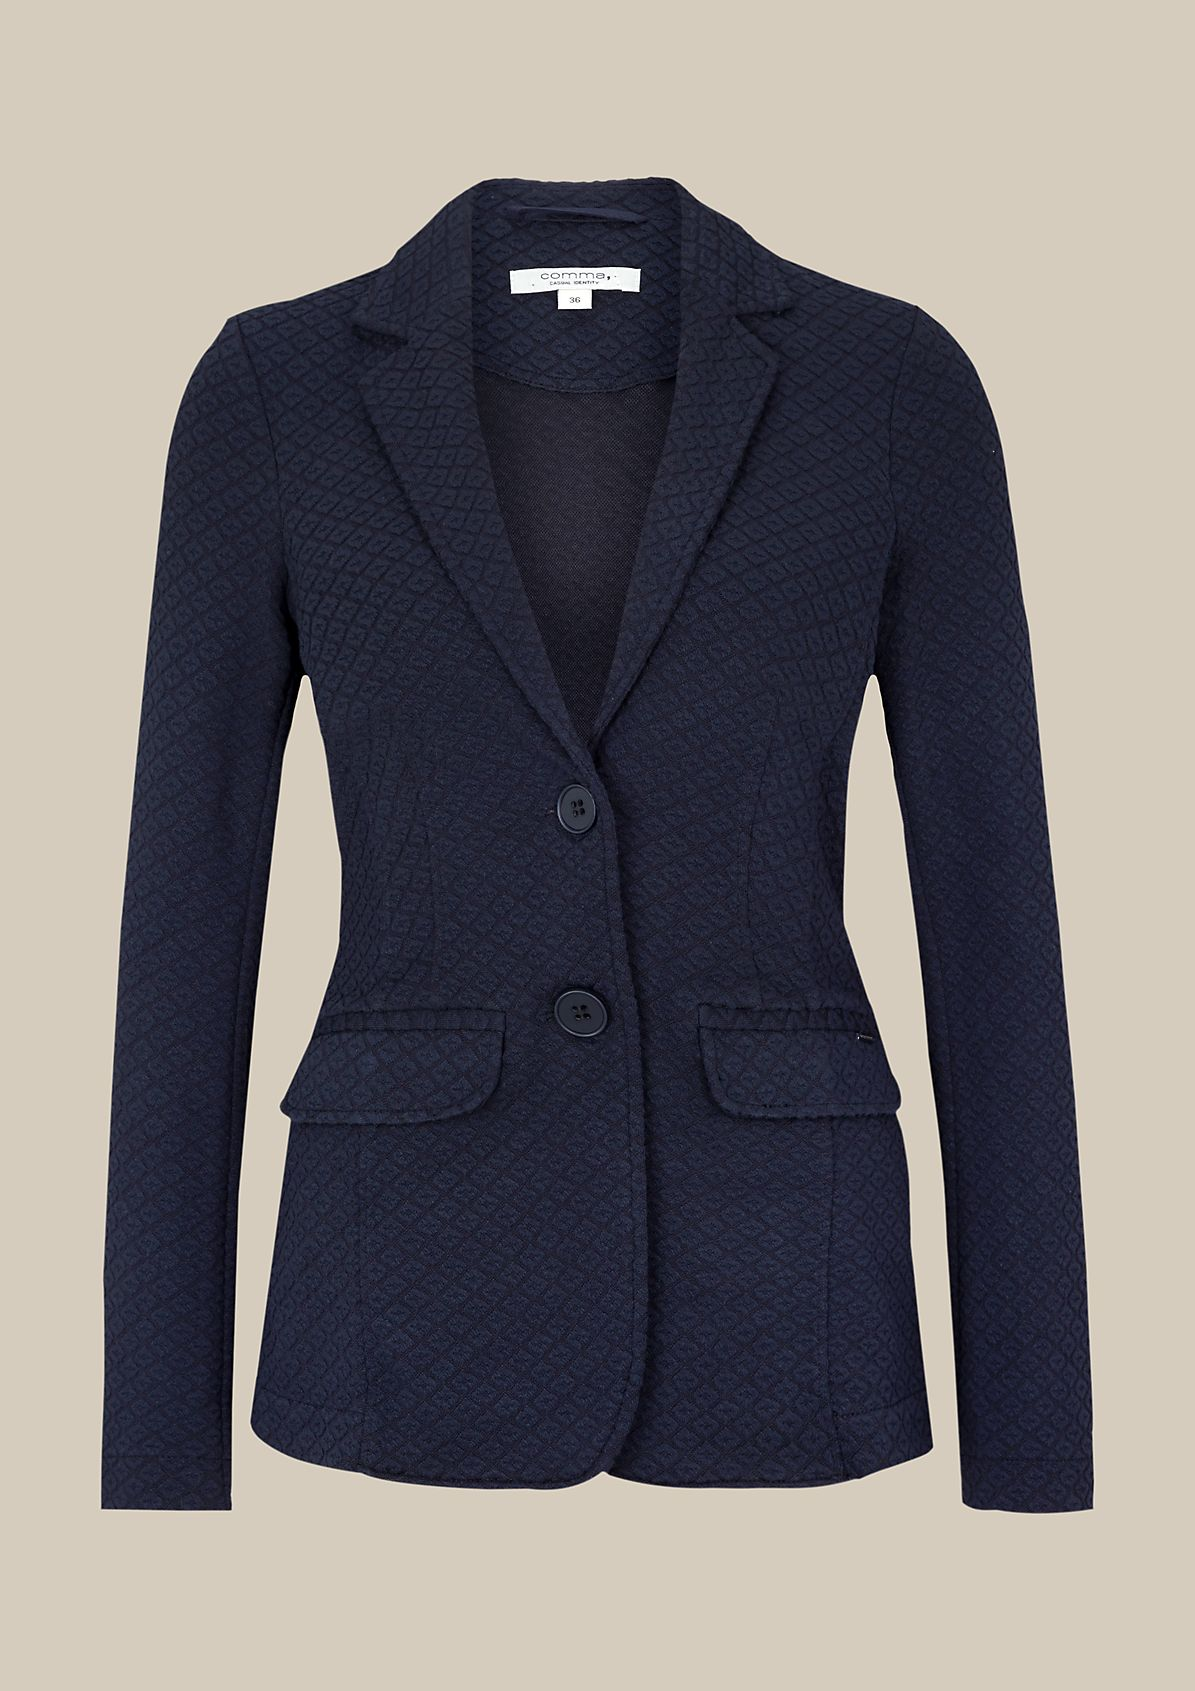 Lightweight blazer with a sophisticated jacquard pattern from s.Oliver